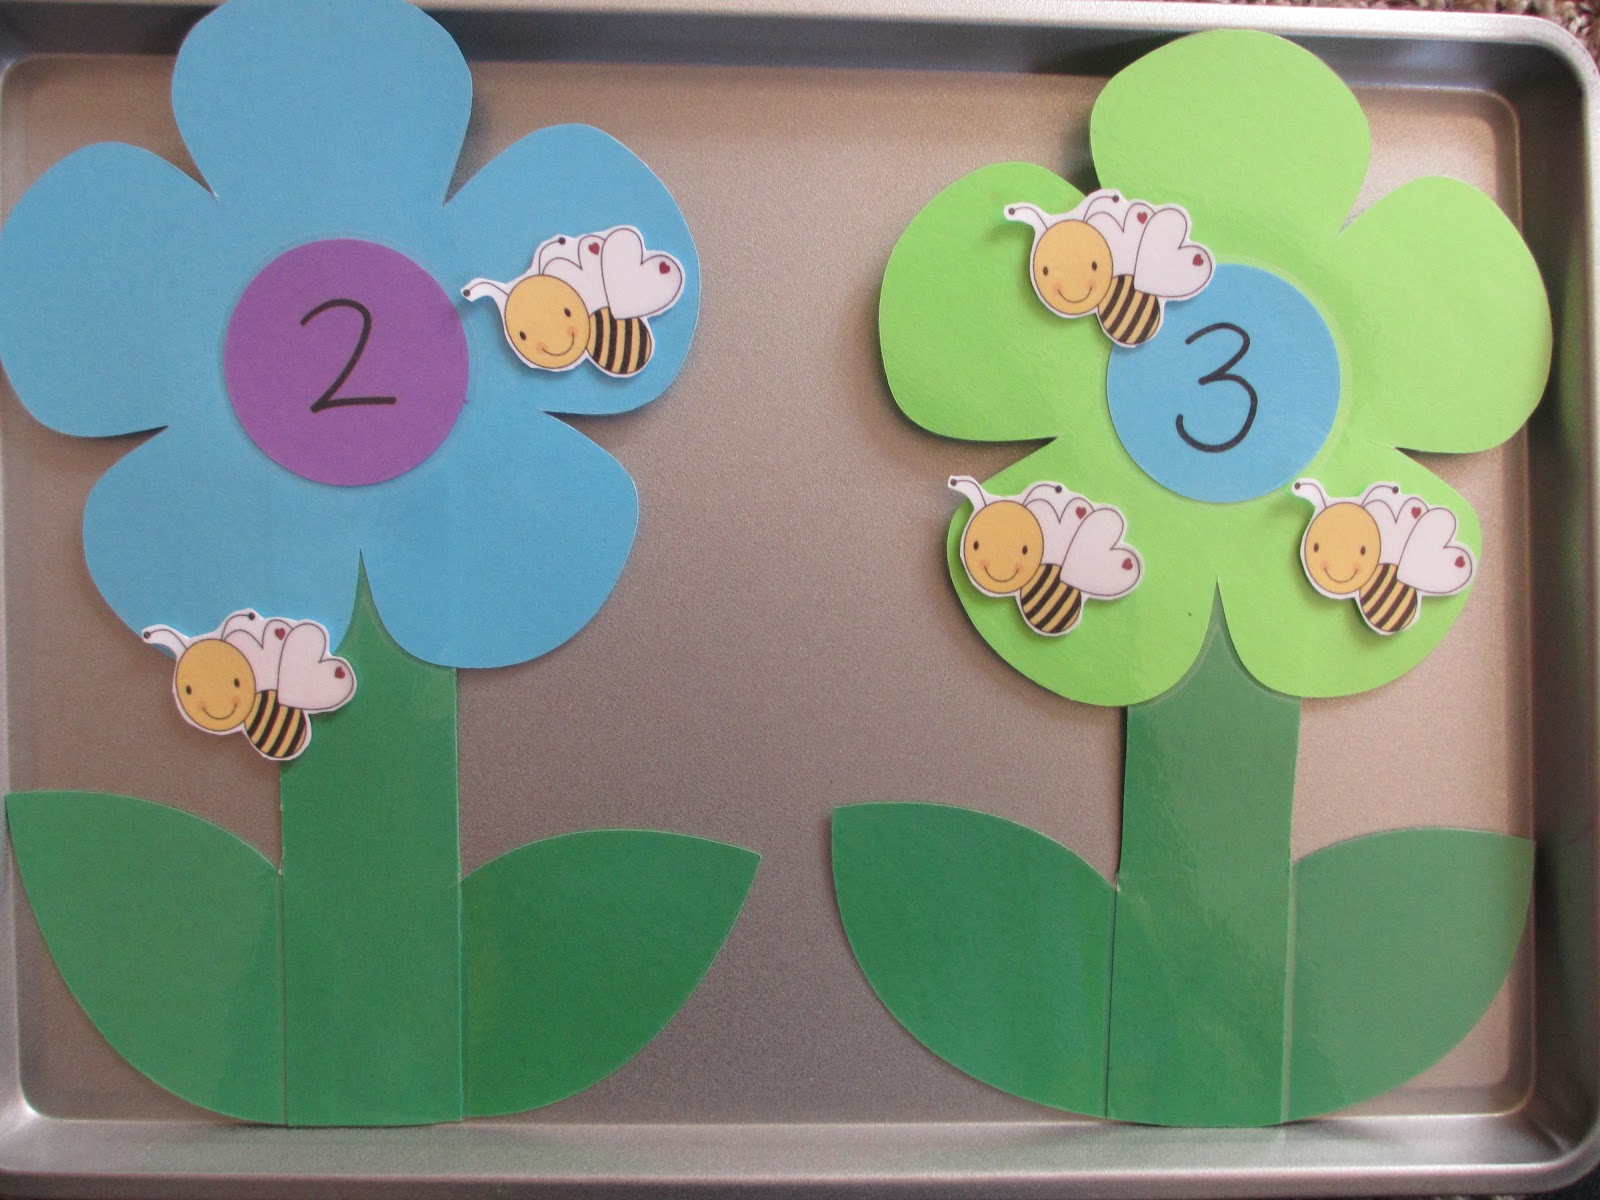 Teaching Munchkins Mighty Math Powers With Flowers JPG 1600x1200 Preschool Flower Counting Charts